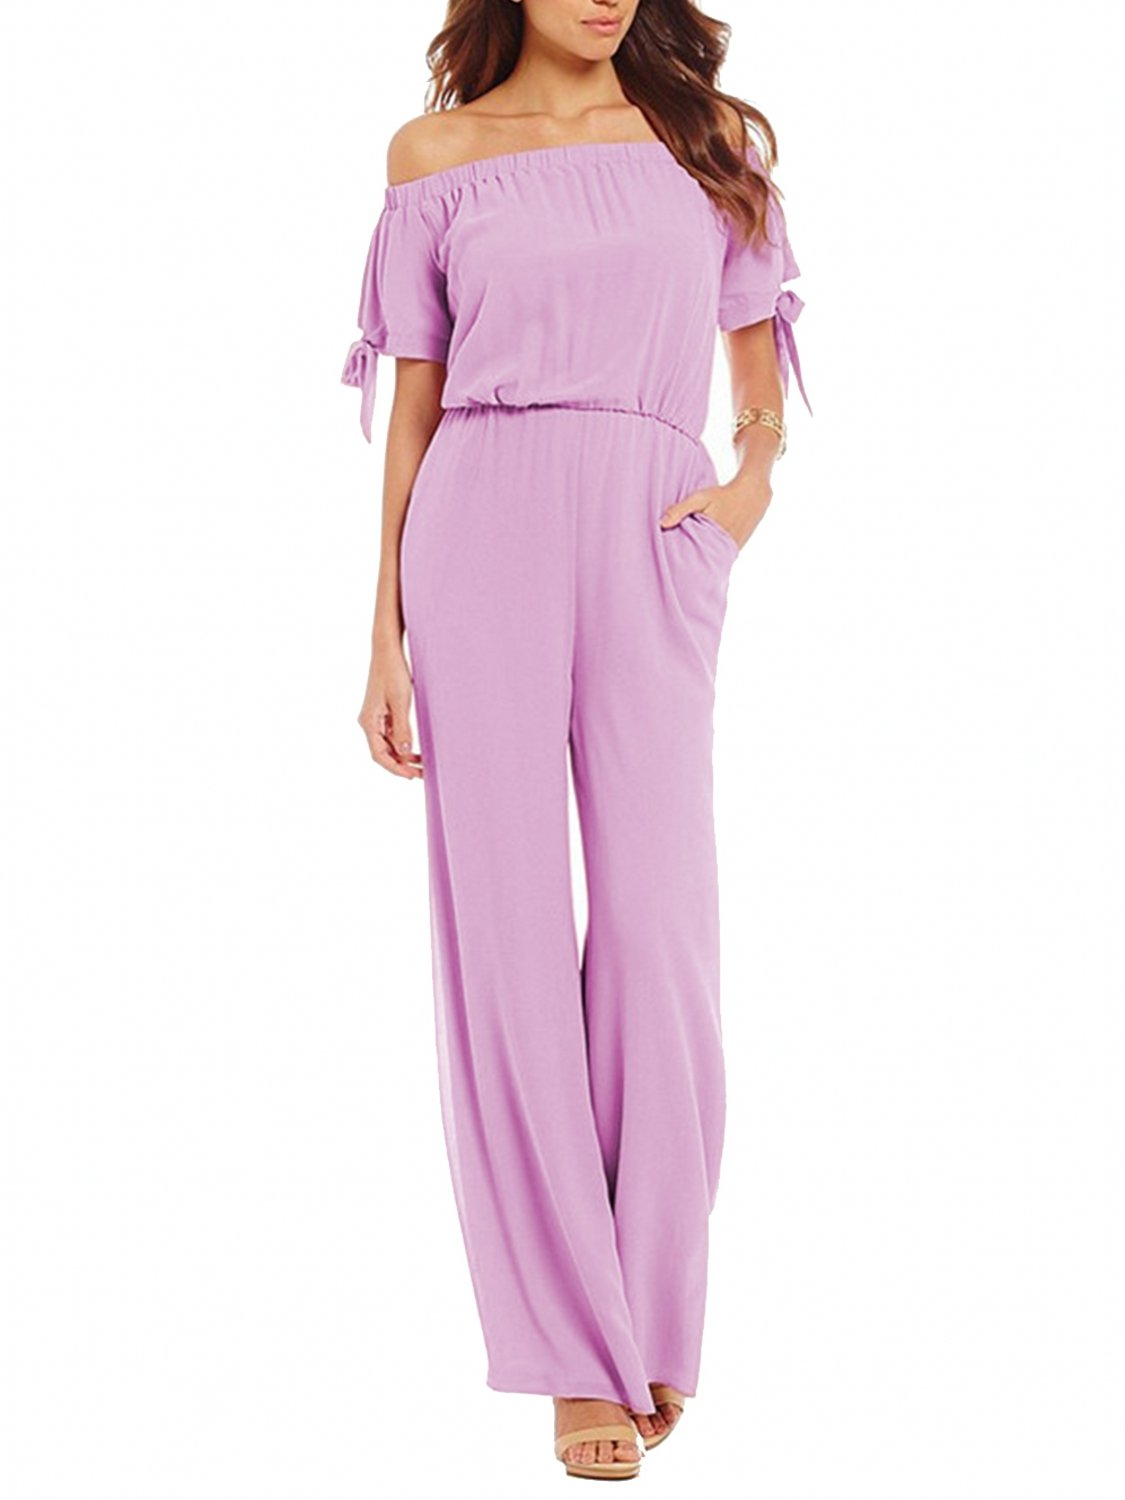 Women's Jumpsuit Loose Off The Shoulder Wide Legs Rompers with Pockets(Purple,S)